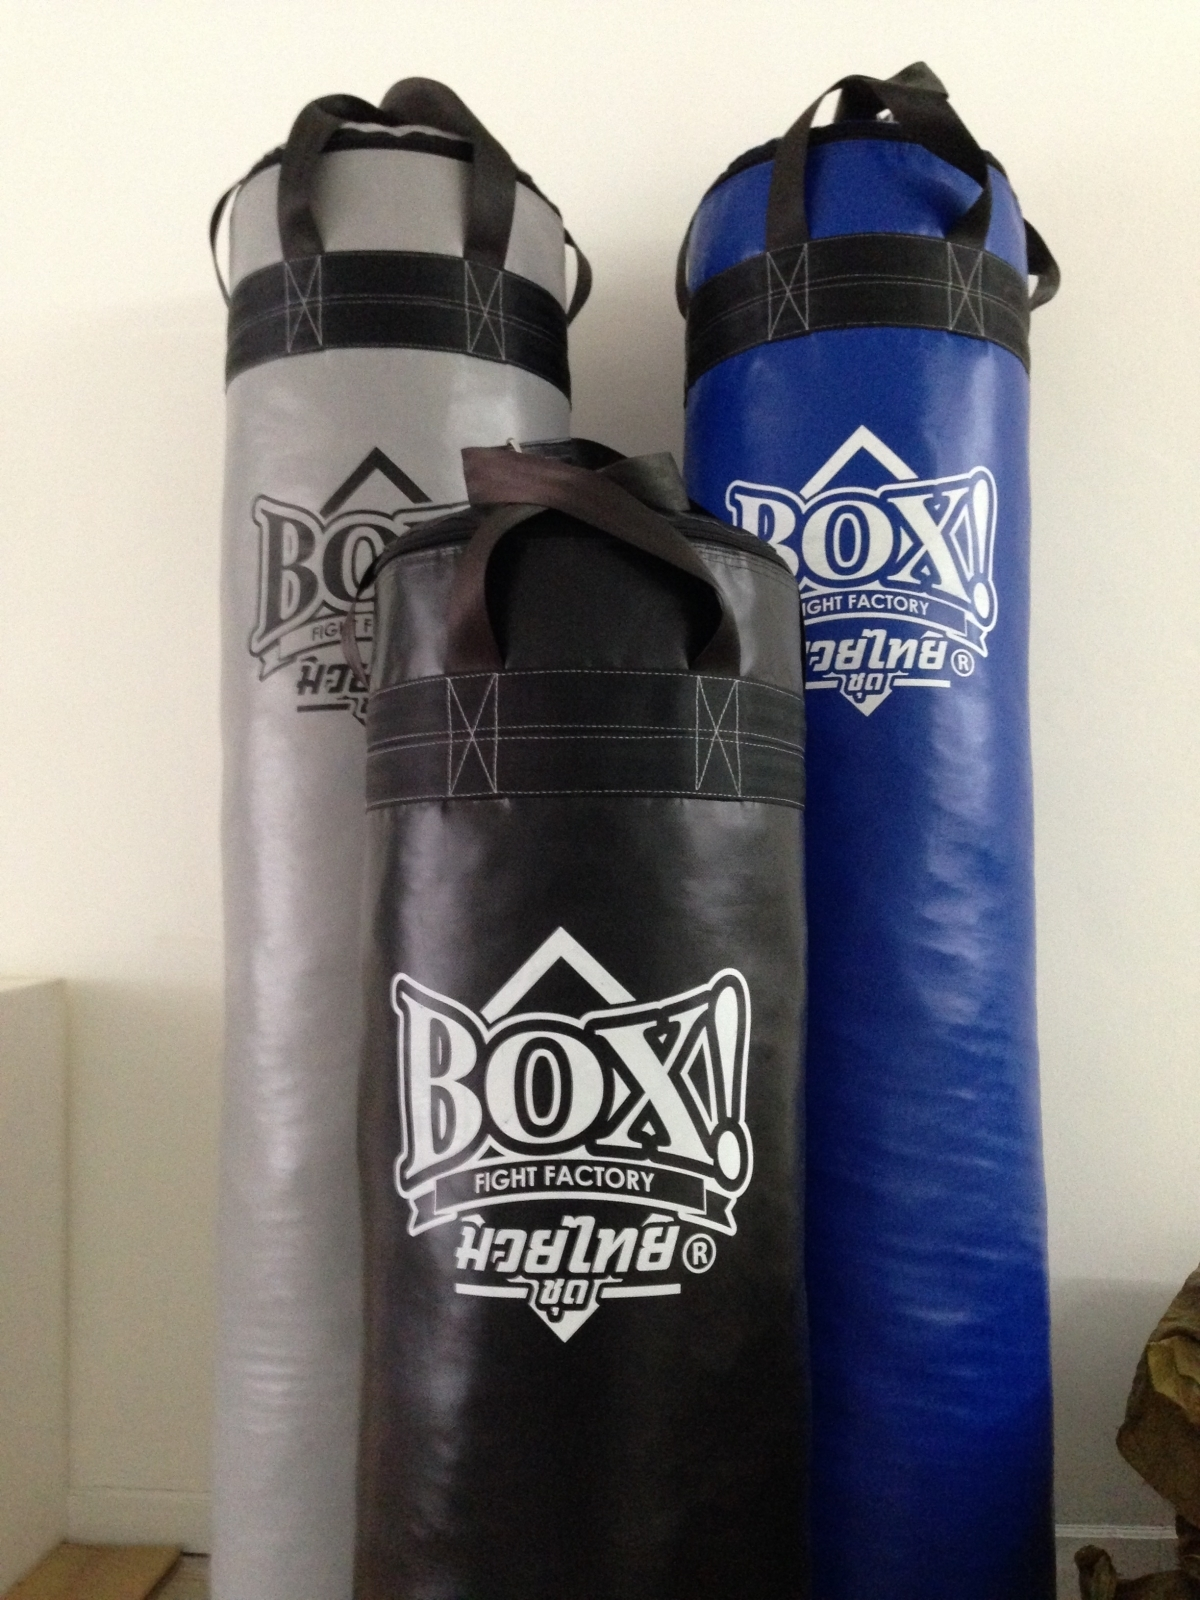 BOX!_Muay-Thai_serie_punching-bag_ 5-feet-RED.JPG